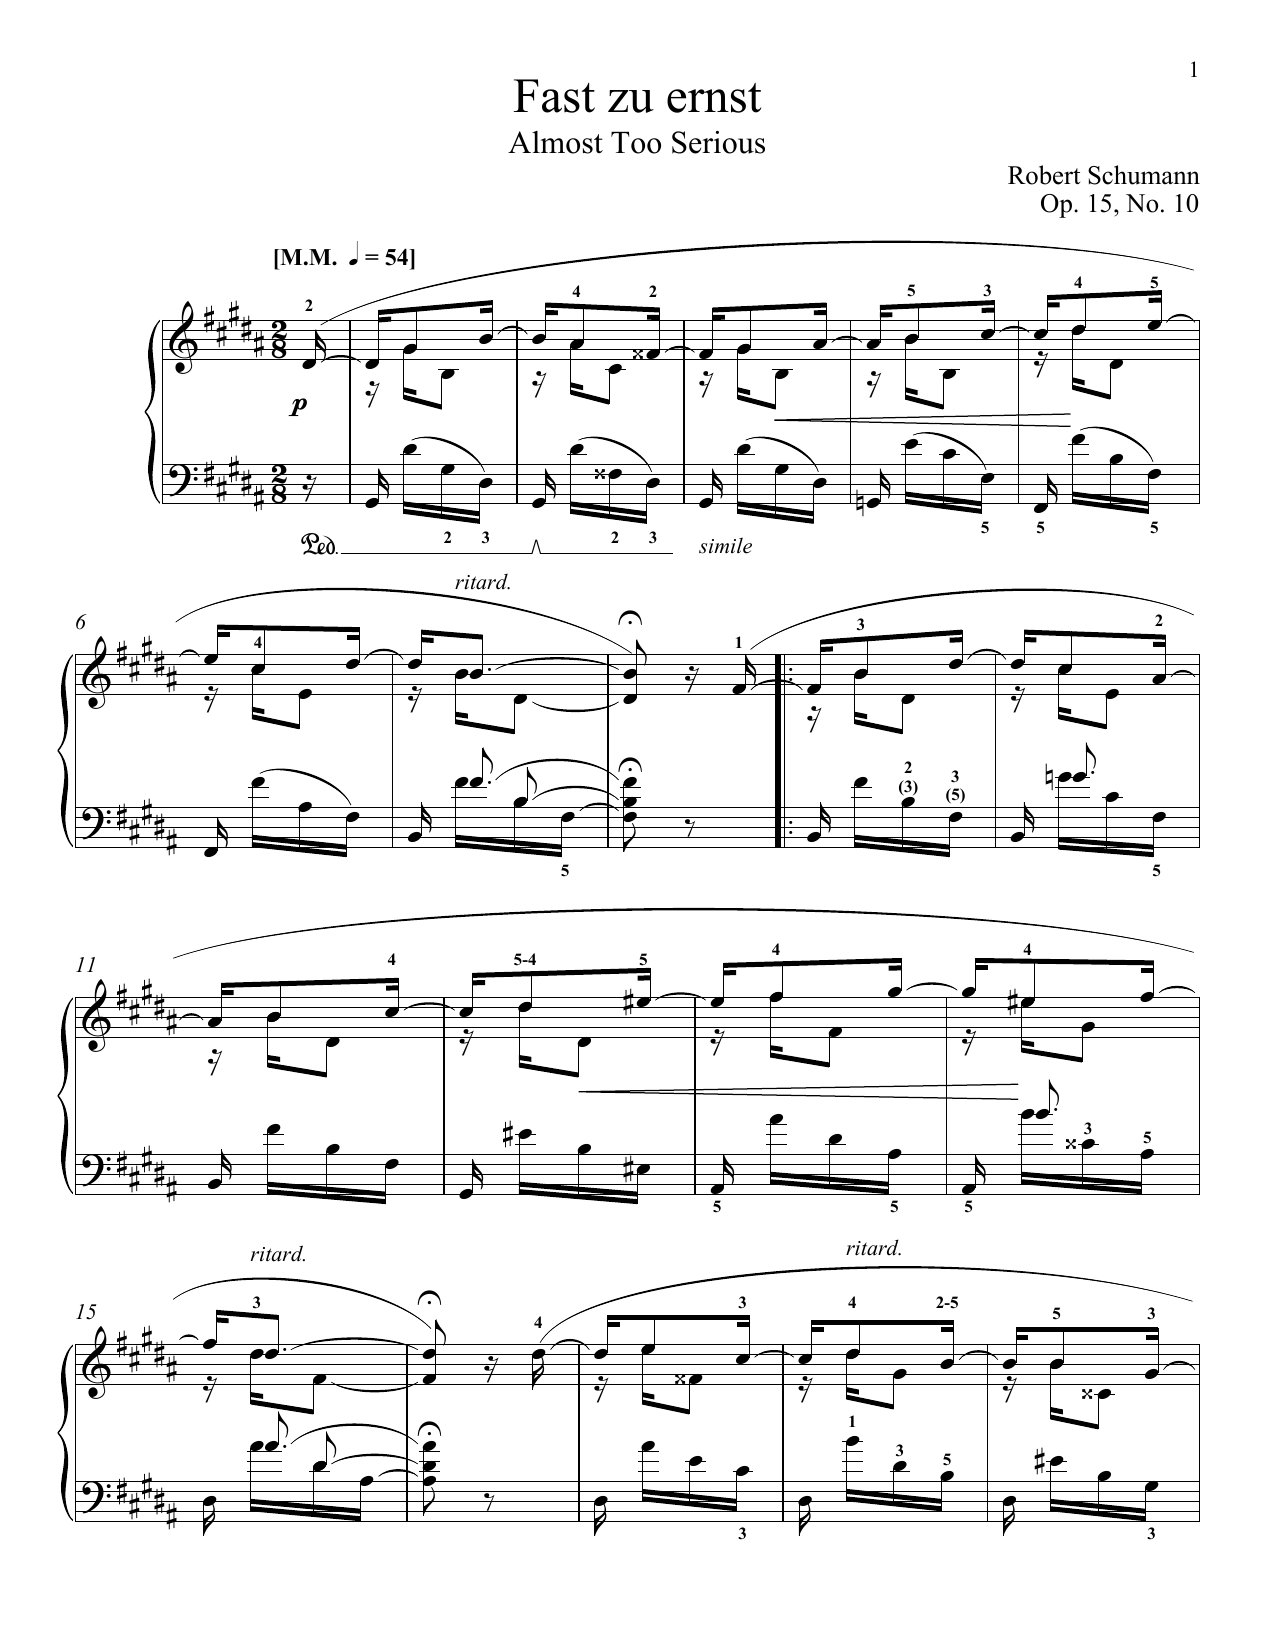 Almost Too Serious, Op. 15, No. 10 (Piano Solo)